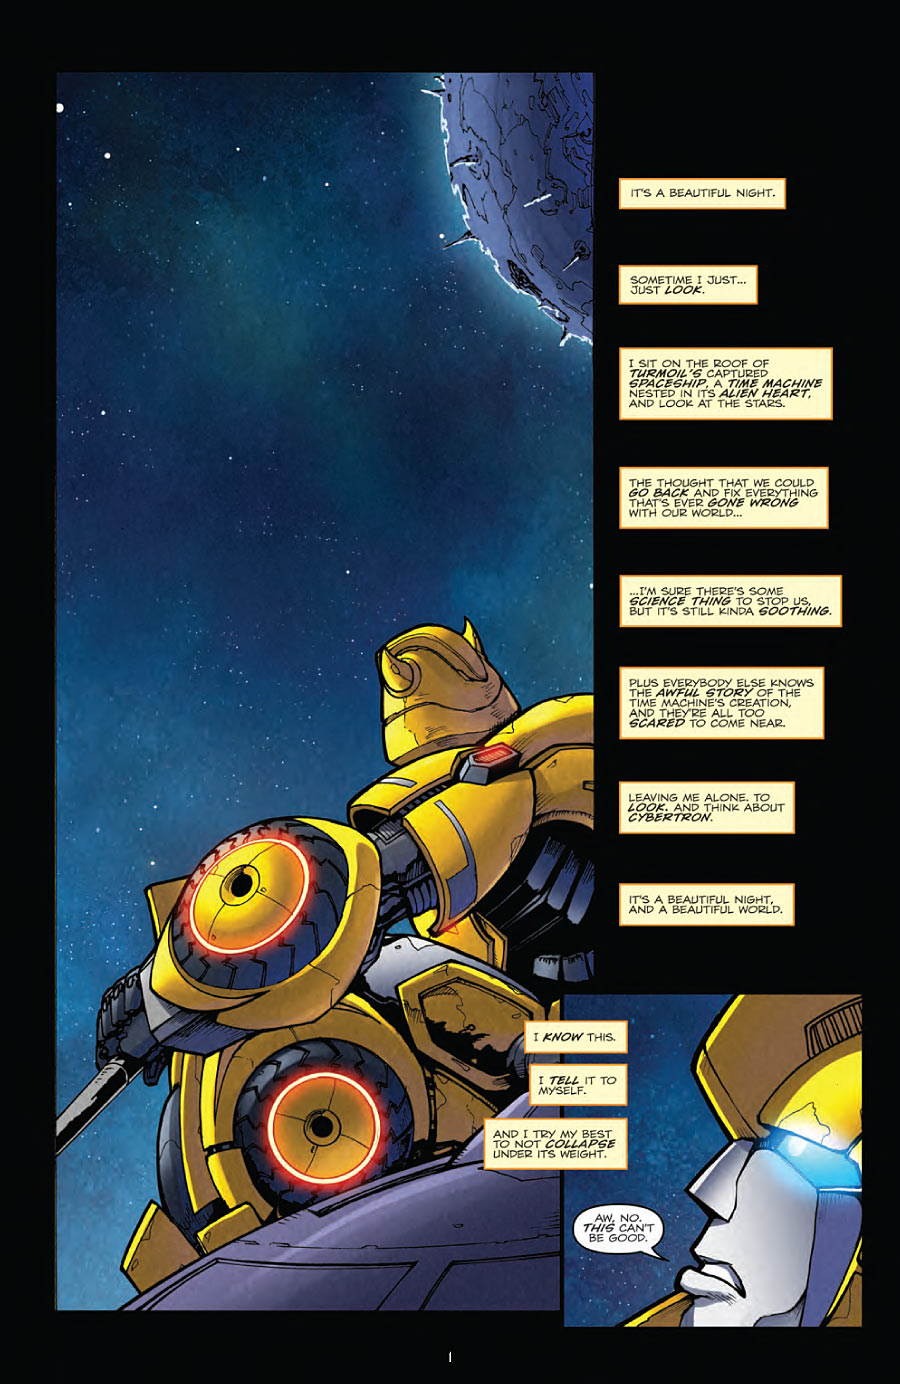 transformers-comics-robots-in-disguise-issue-9-page-1 Transformers Robots in Disguise #9